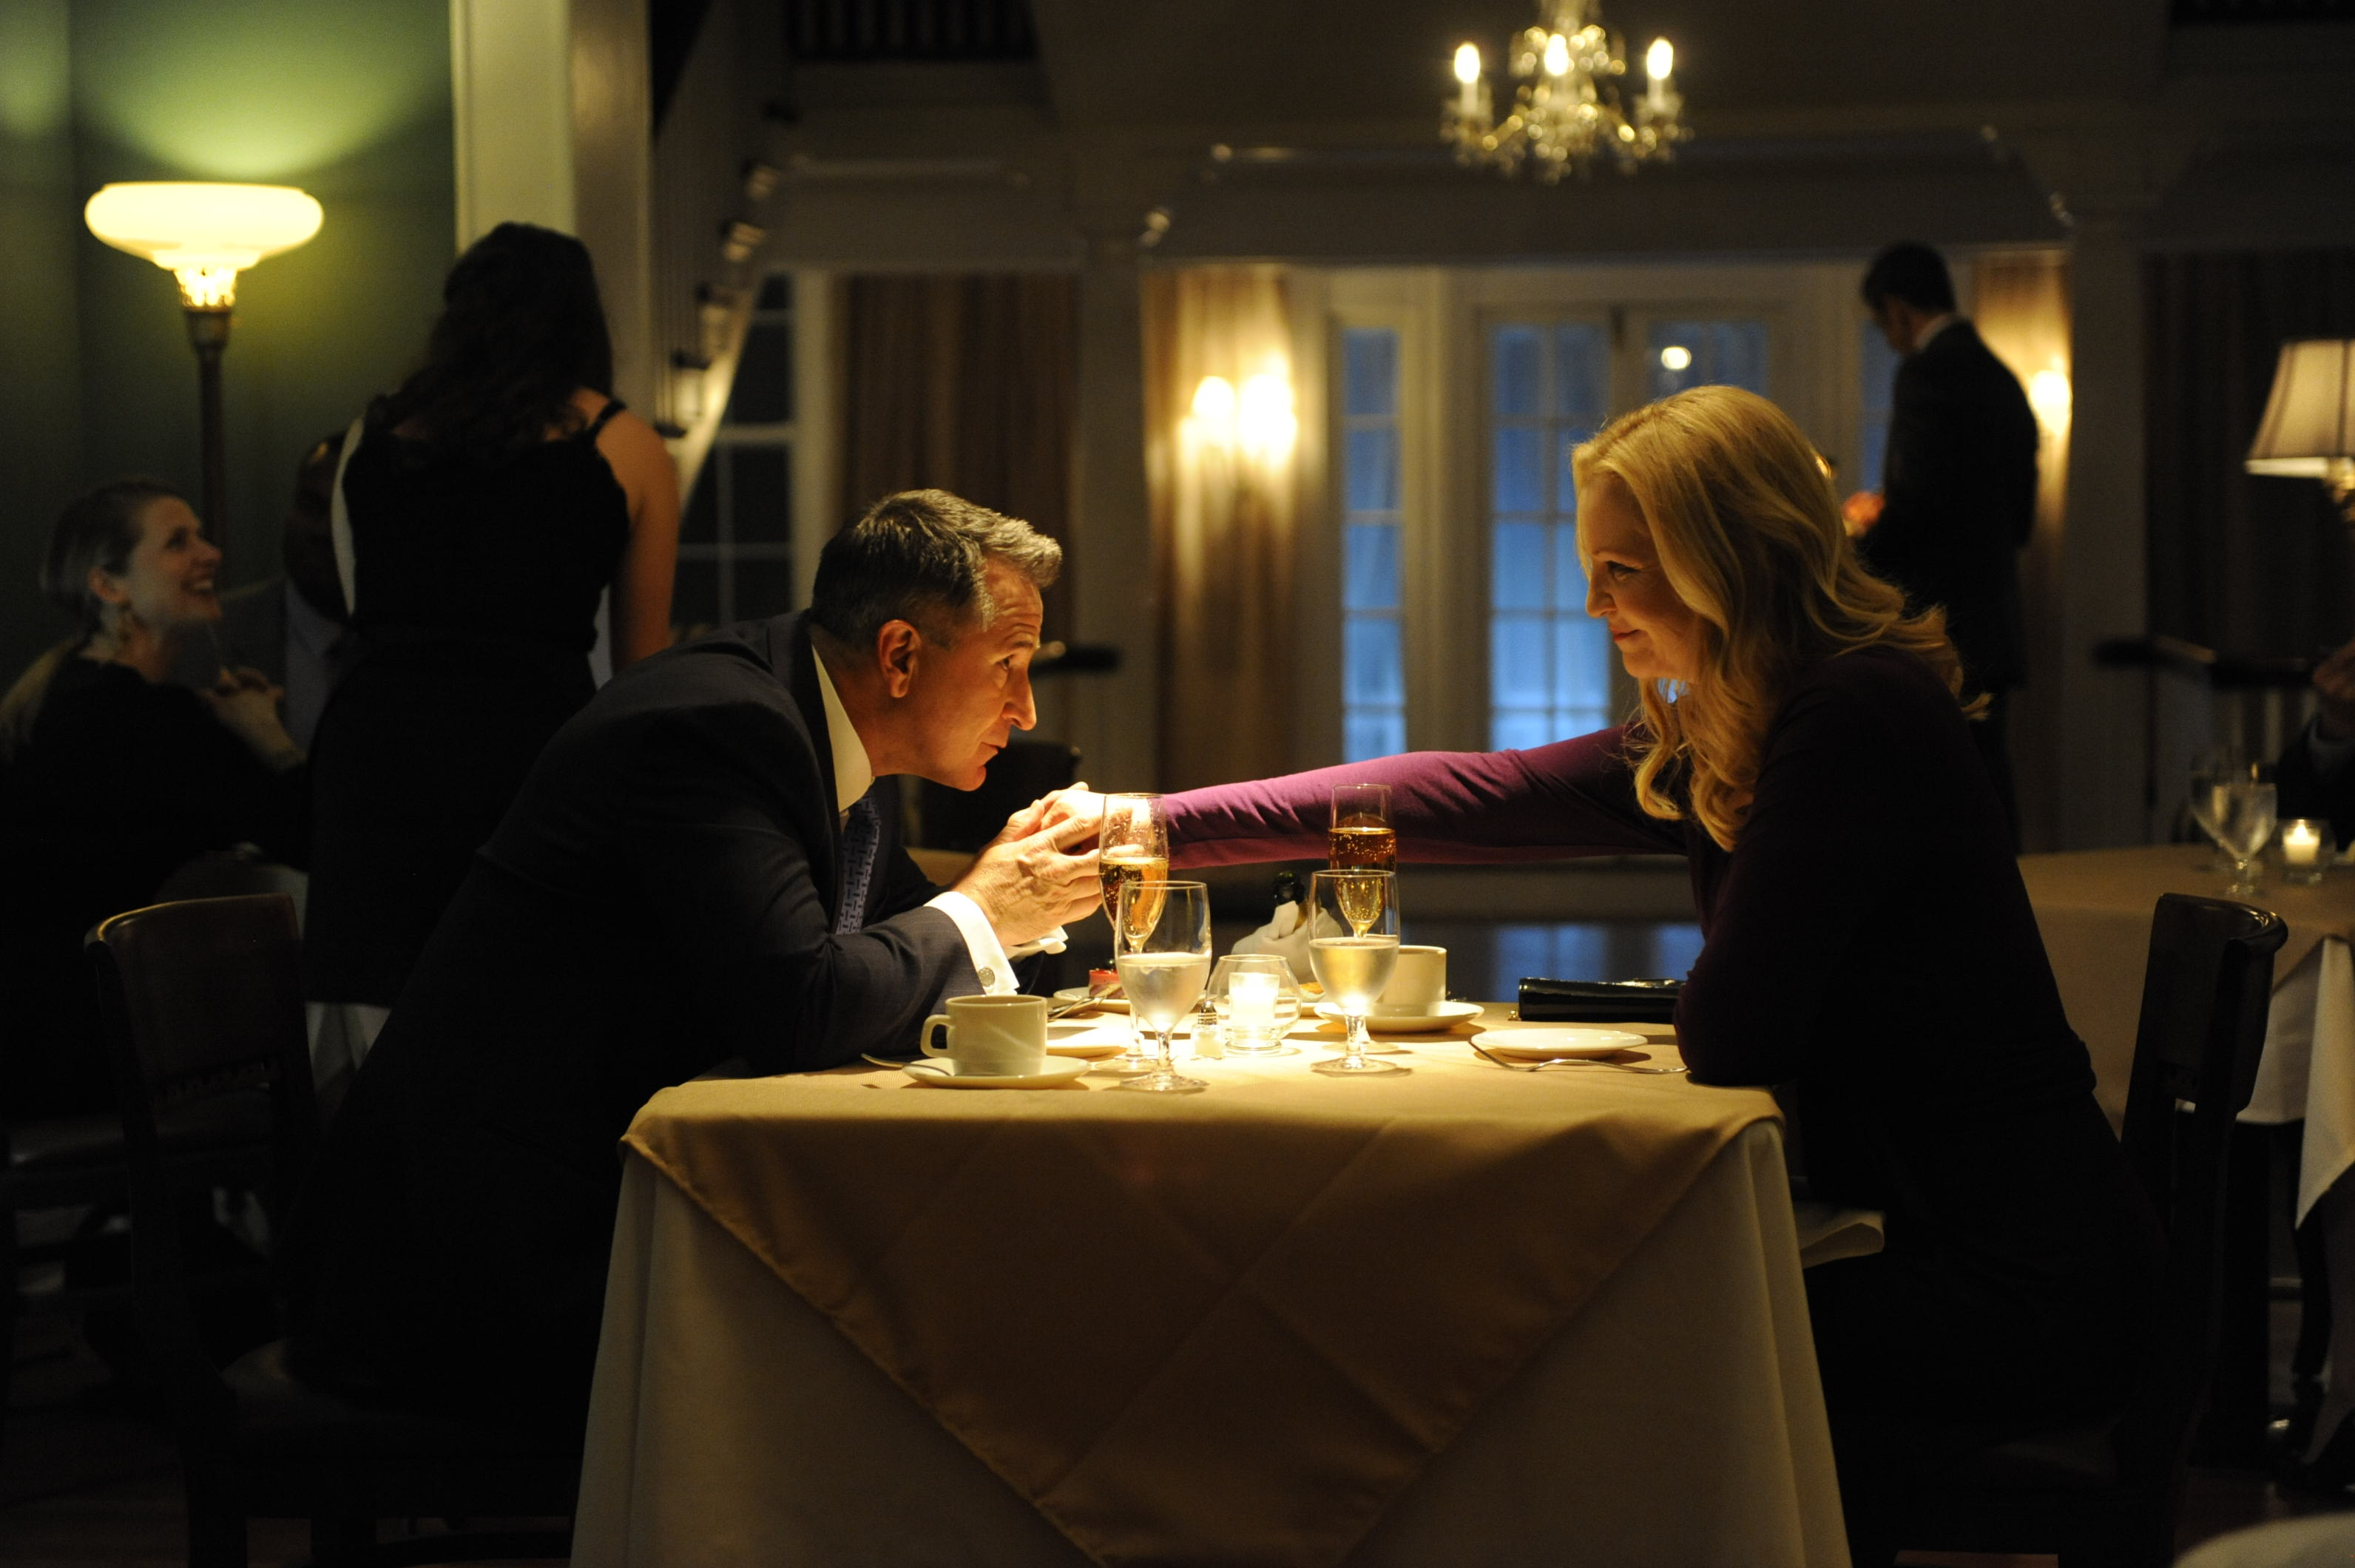 Anthony LaPaglia and Joan Allen in Stephen Kings's 'A Good Marriage'